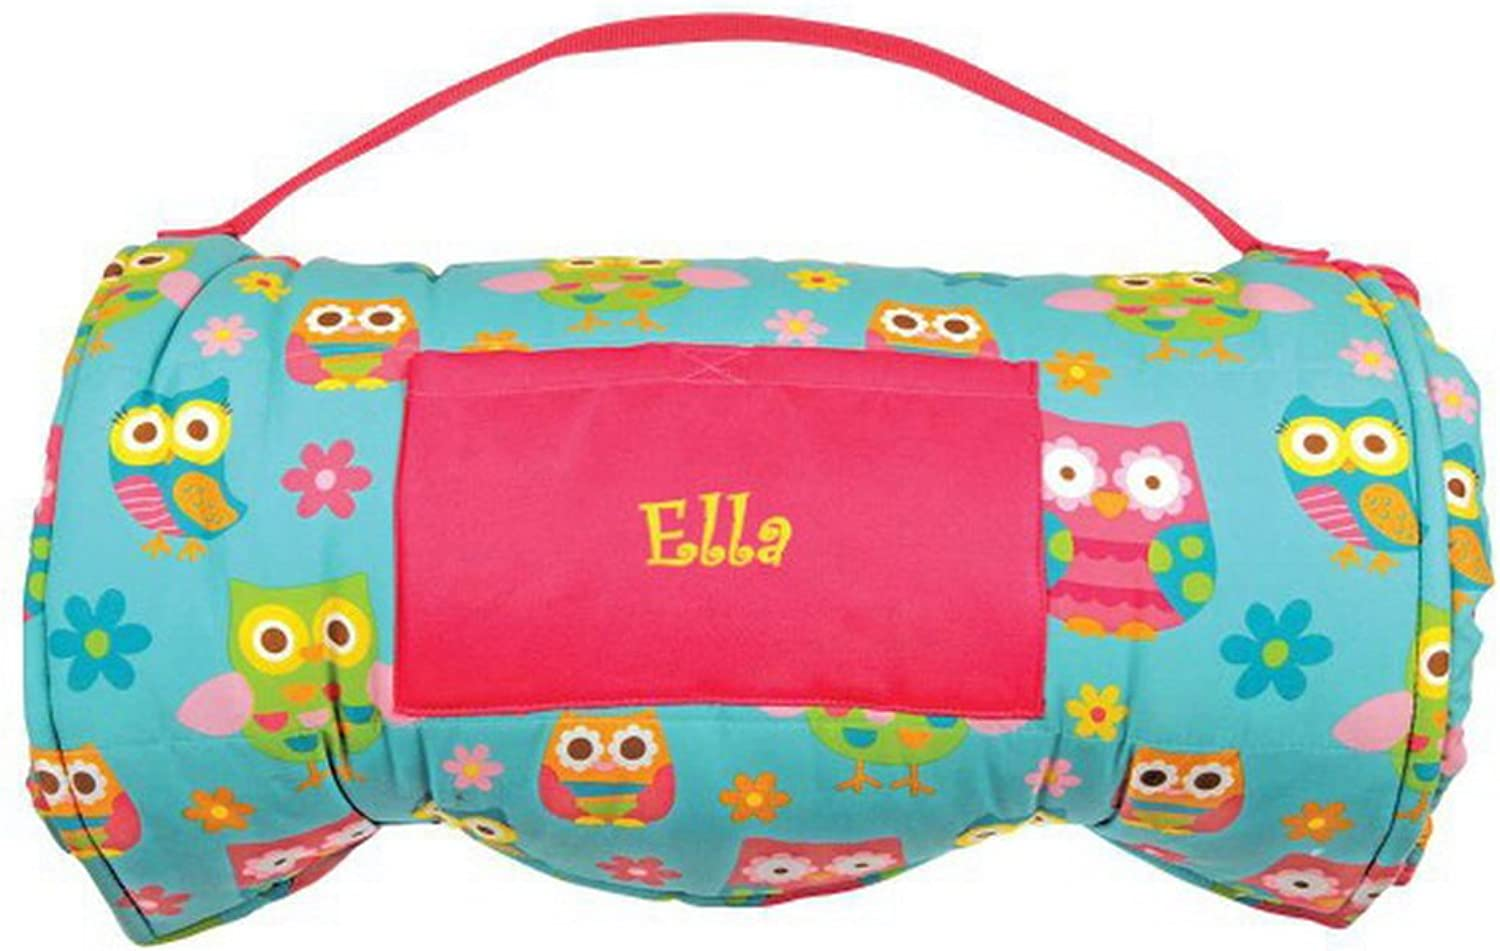 DIBSIES Personalization Station Personalized Toddler & Preschool Nap Mats  Owls